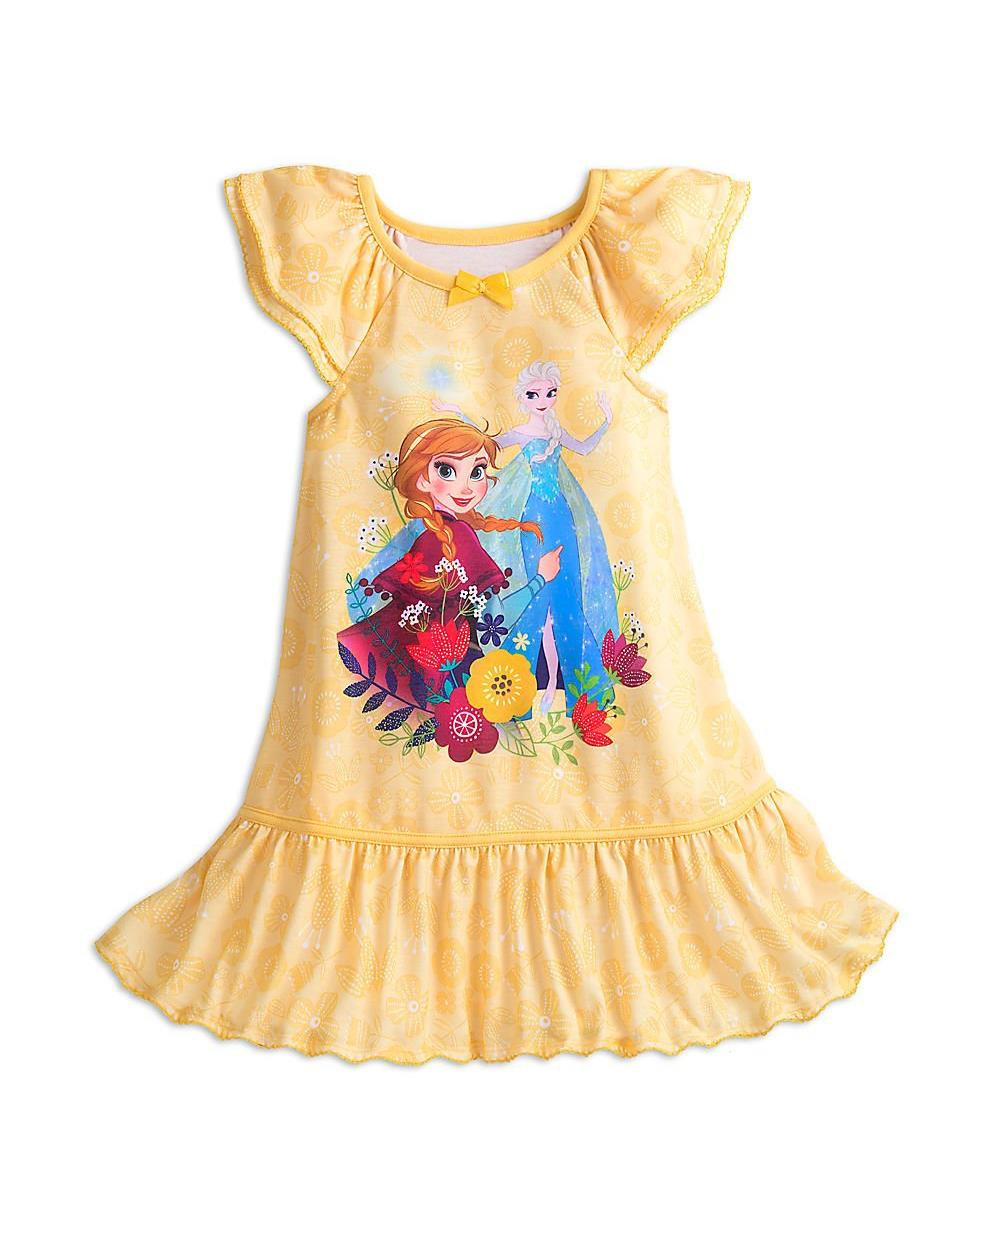 Disney Frozen Nightshirt for Girls Yellow, Yellow, Size: 7-8